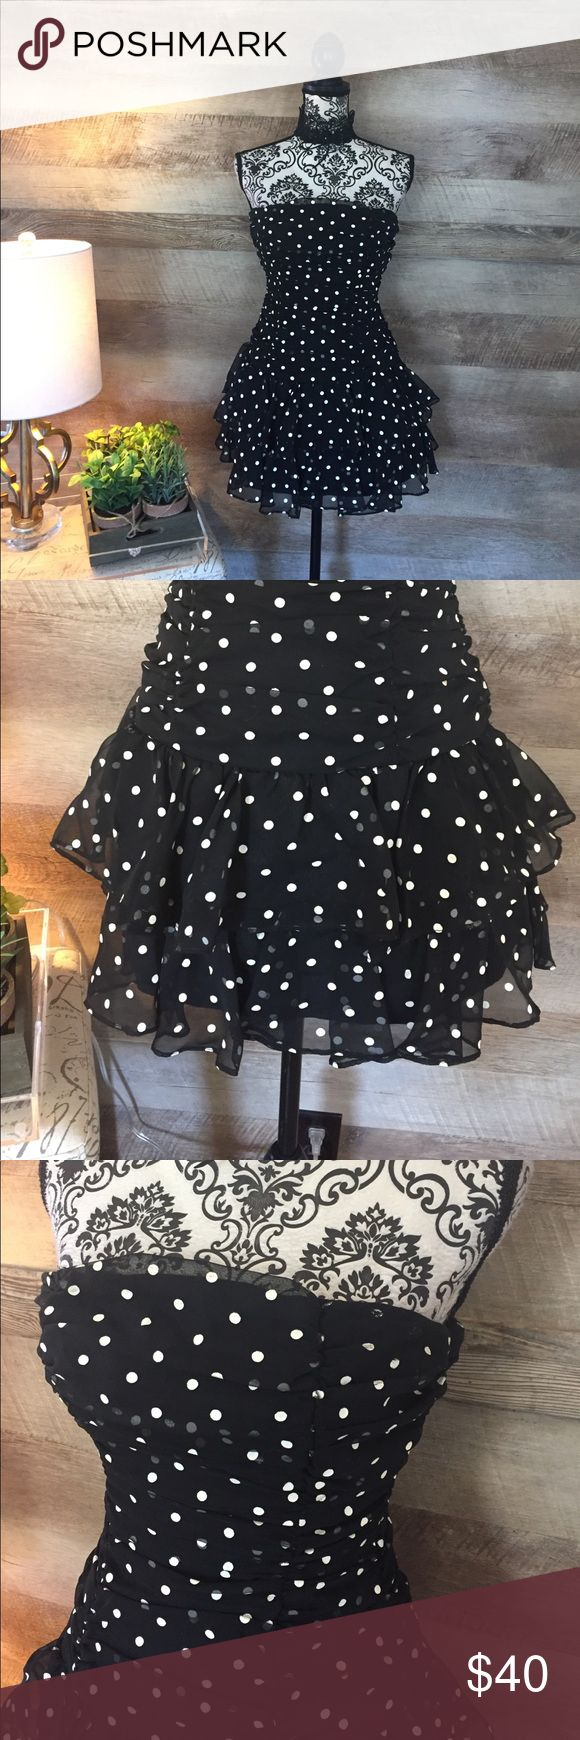 Polka Dot Strapless 80's Style Dress Size 8. BUT RUNS SMALL! By Heidi J. Black with white polka dots. Lined. Zip up back. ZIPPER WORKS FINE just didn't fit my mannequin. 100% polyester. Strapless. Layered ruffles. Because it Runs SMALL be sure to ask for measurements. Dresses Mini